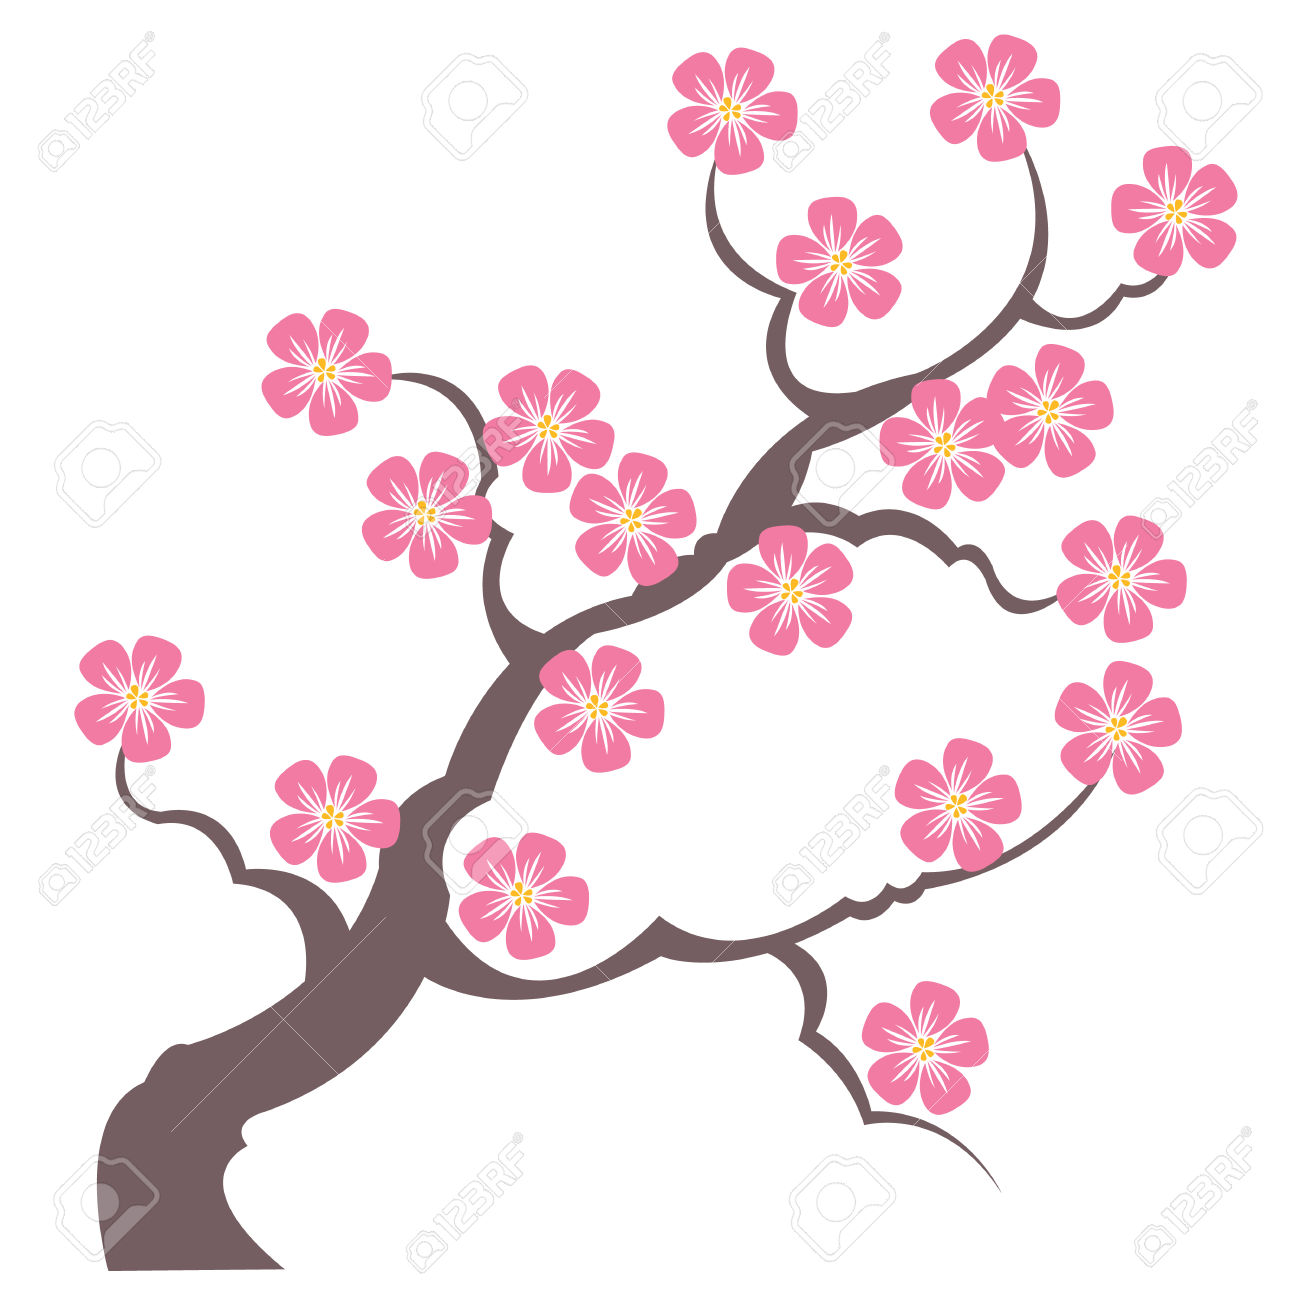 140 Japanese Flowering Cherry Stock Vector Illustration And.